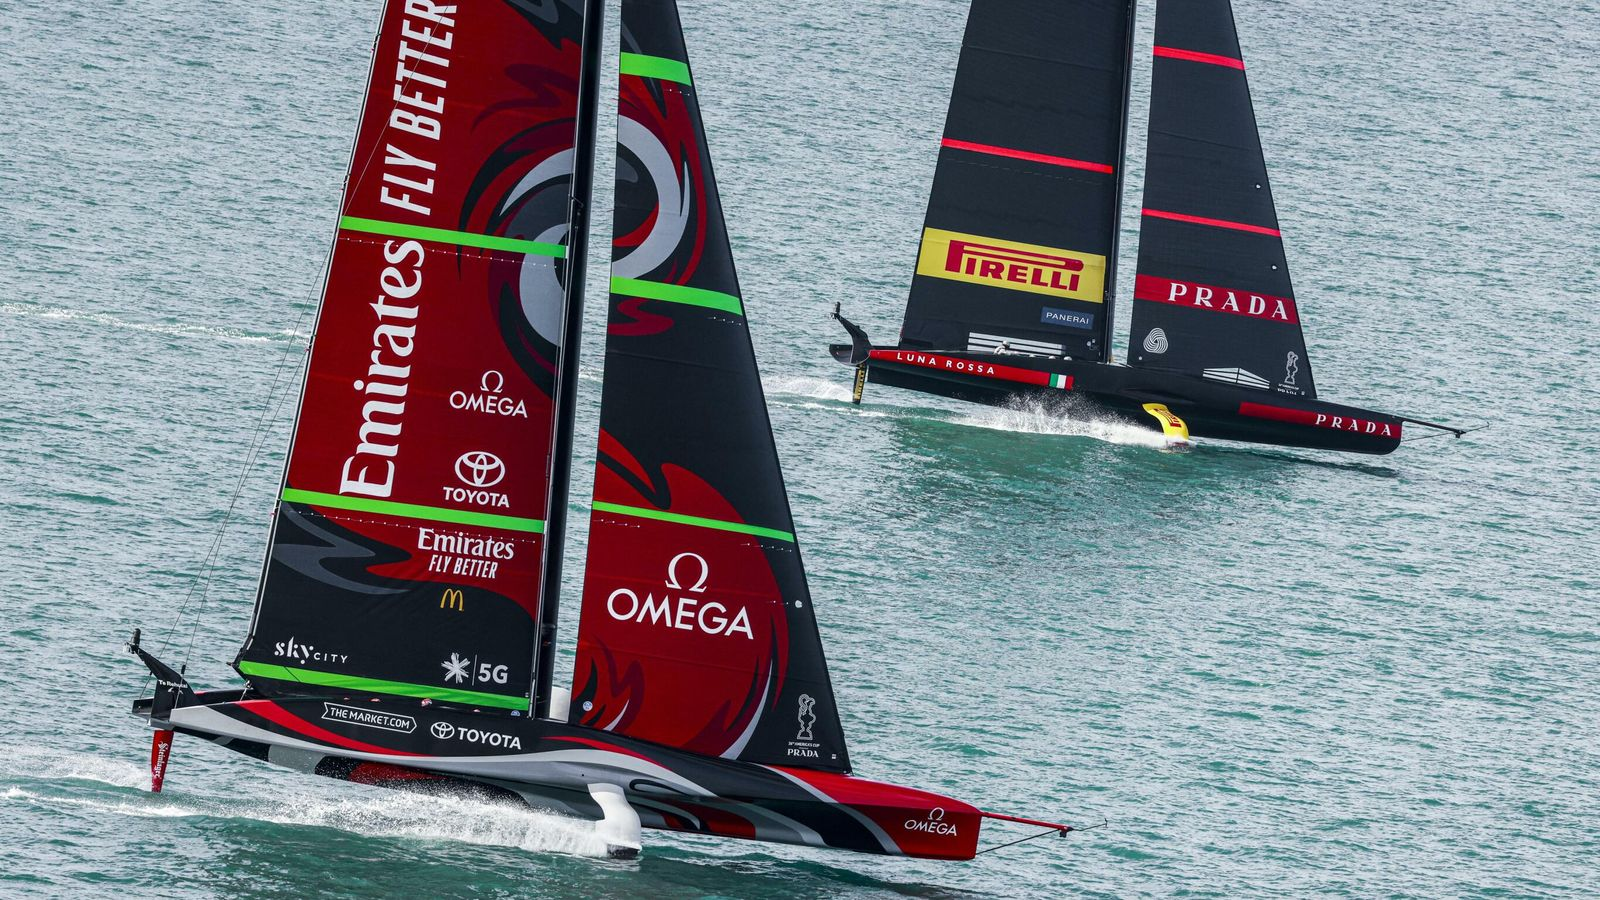 36th America's Cup: Emirates Team New Zealand win America's Cup World Series in Auckland